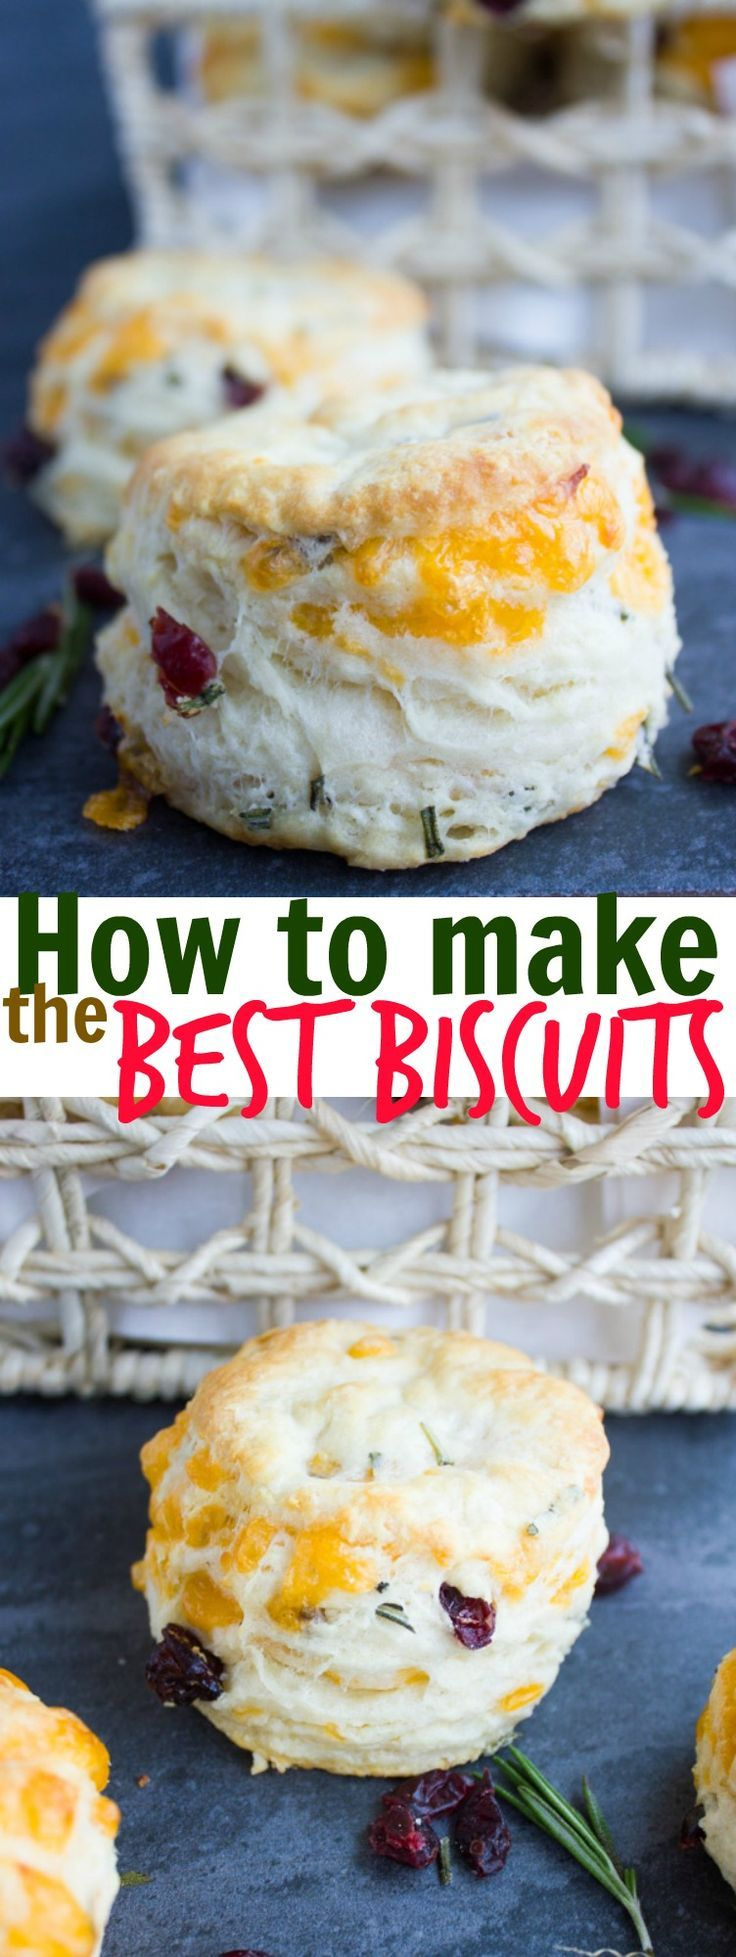 How To Make Biscuits With Cheddar Rosemary & Cranberries. Seriously the secret is OUT--the ultimate tips, step by step and secret to make FLUFFY, PILLOWY homemade biscuits! Get this base recipe now and enjoy it forever! www.twopurplefigs.com